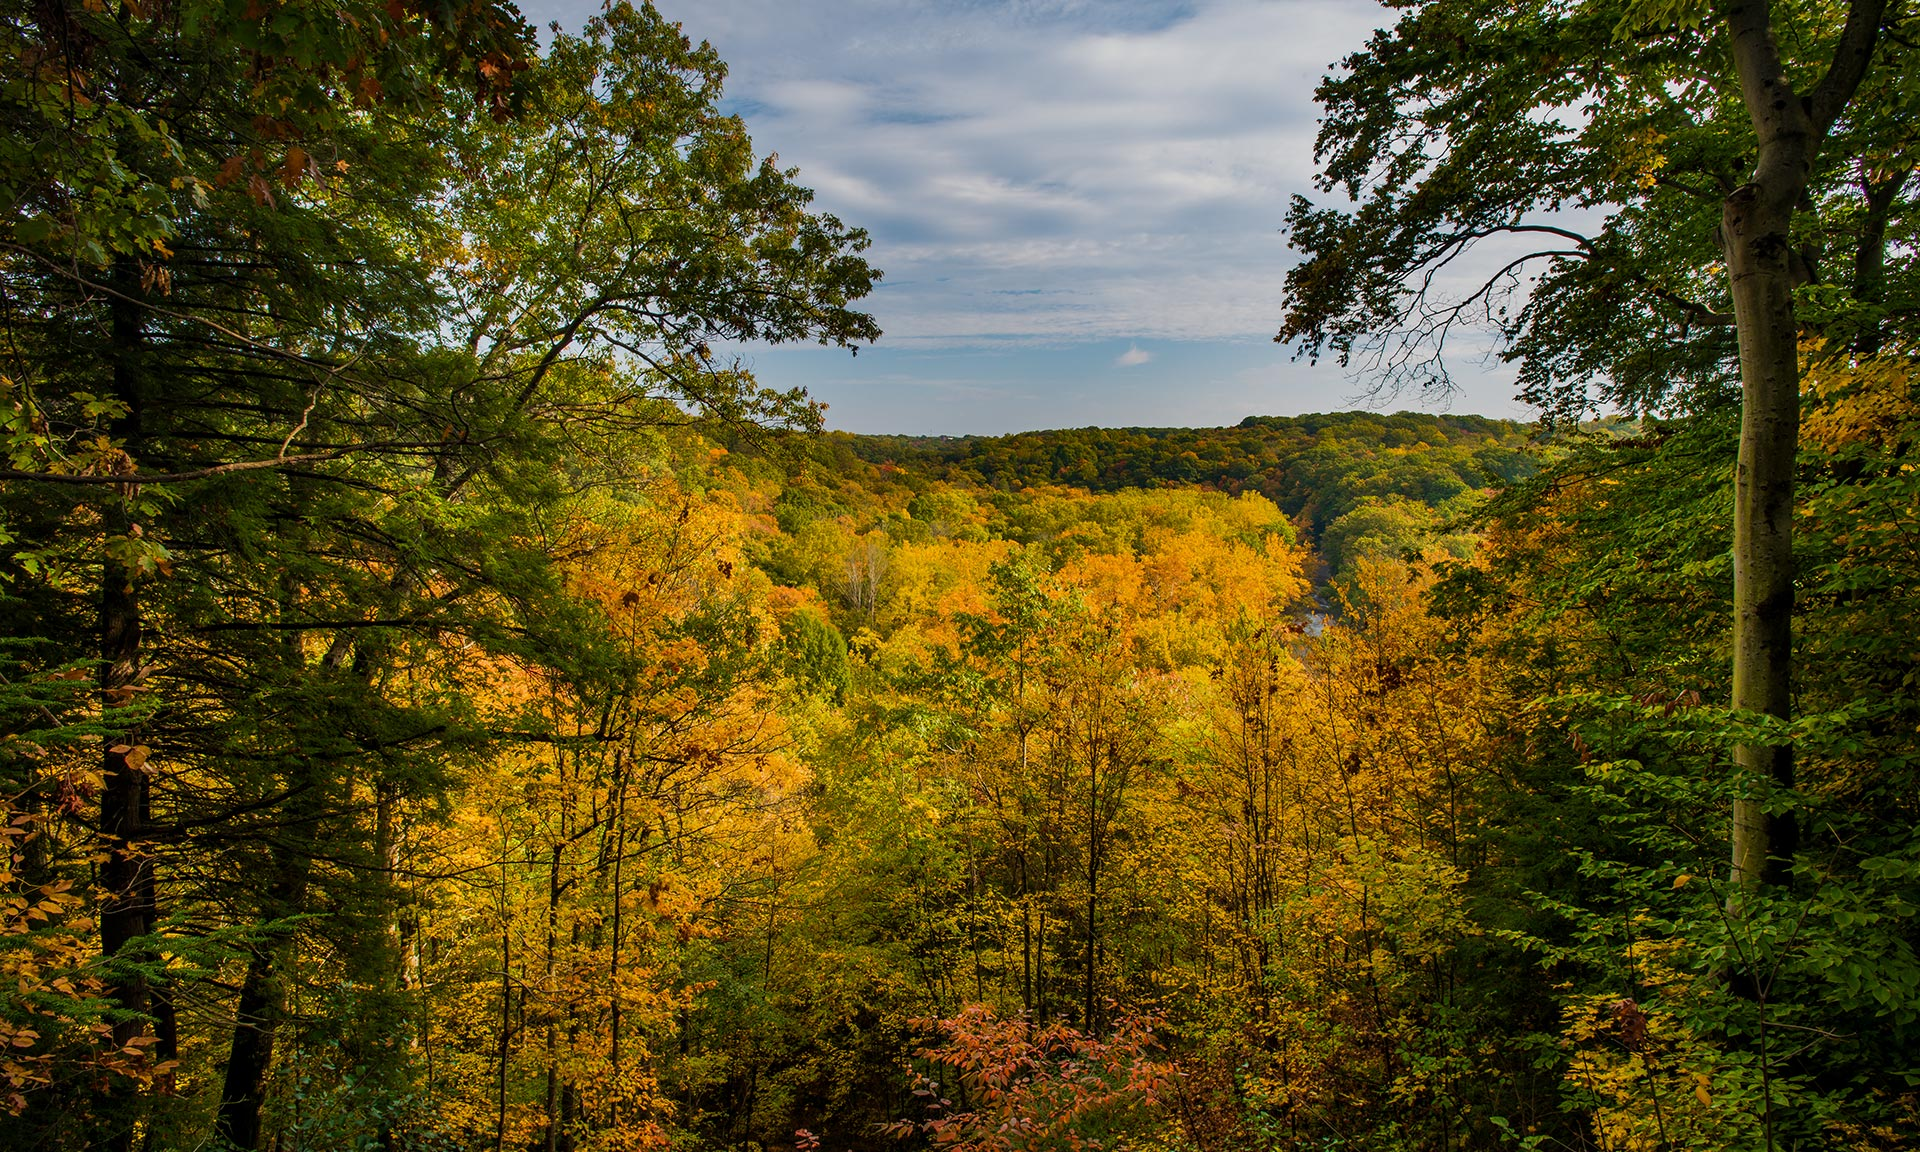 View of Fall Trees from Scenic Overlook at Bedford Reservation